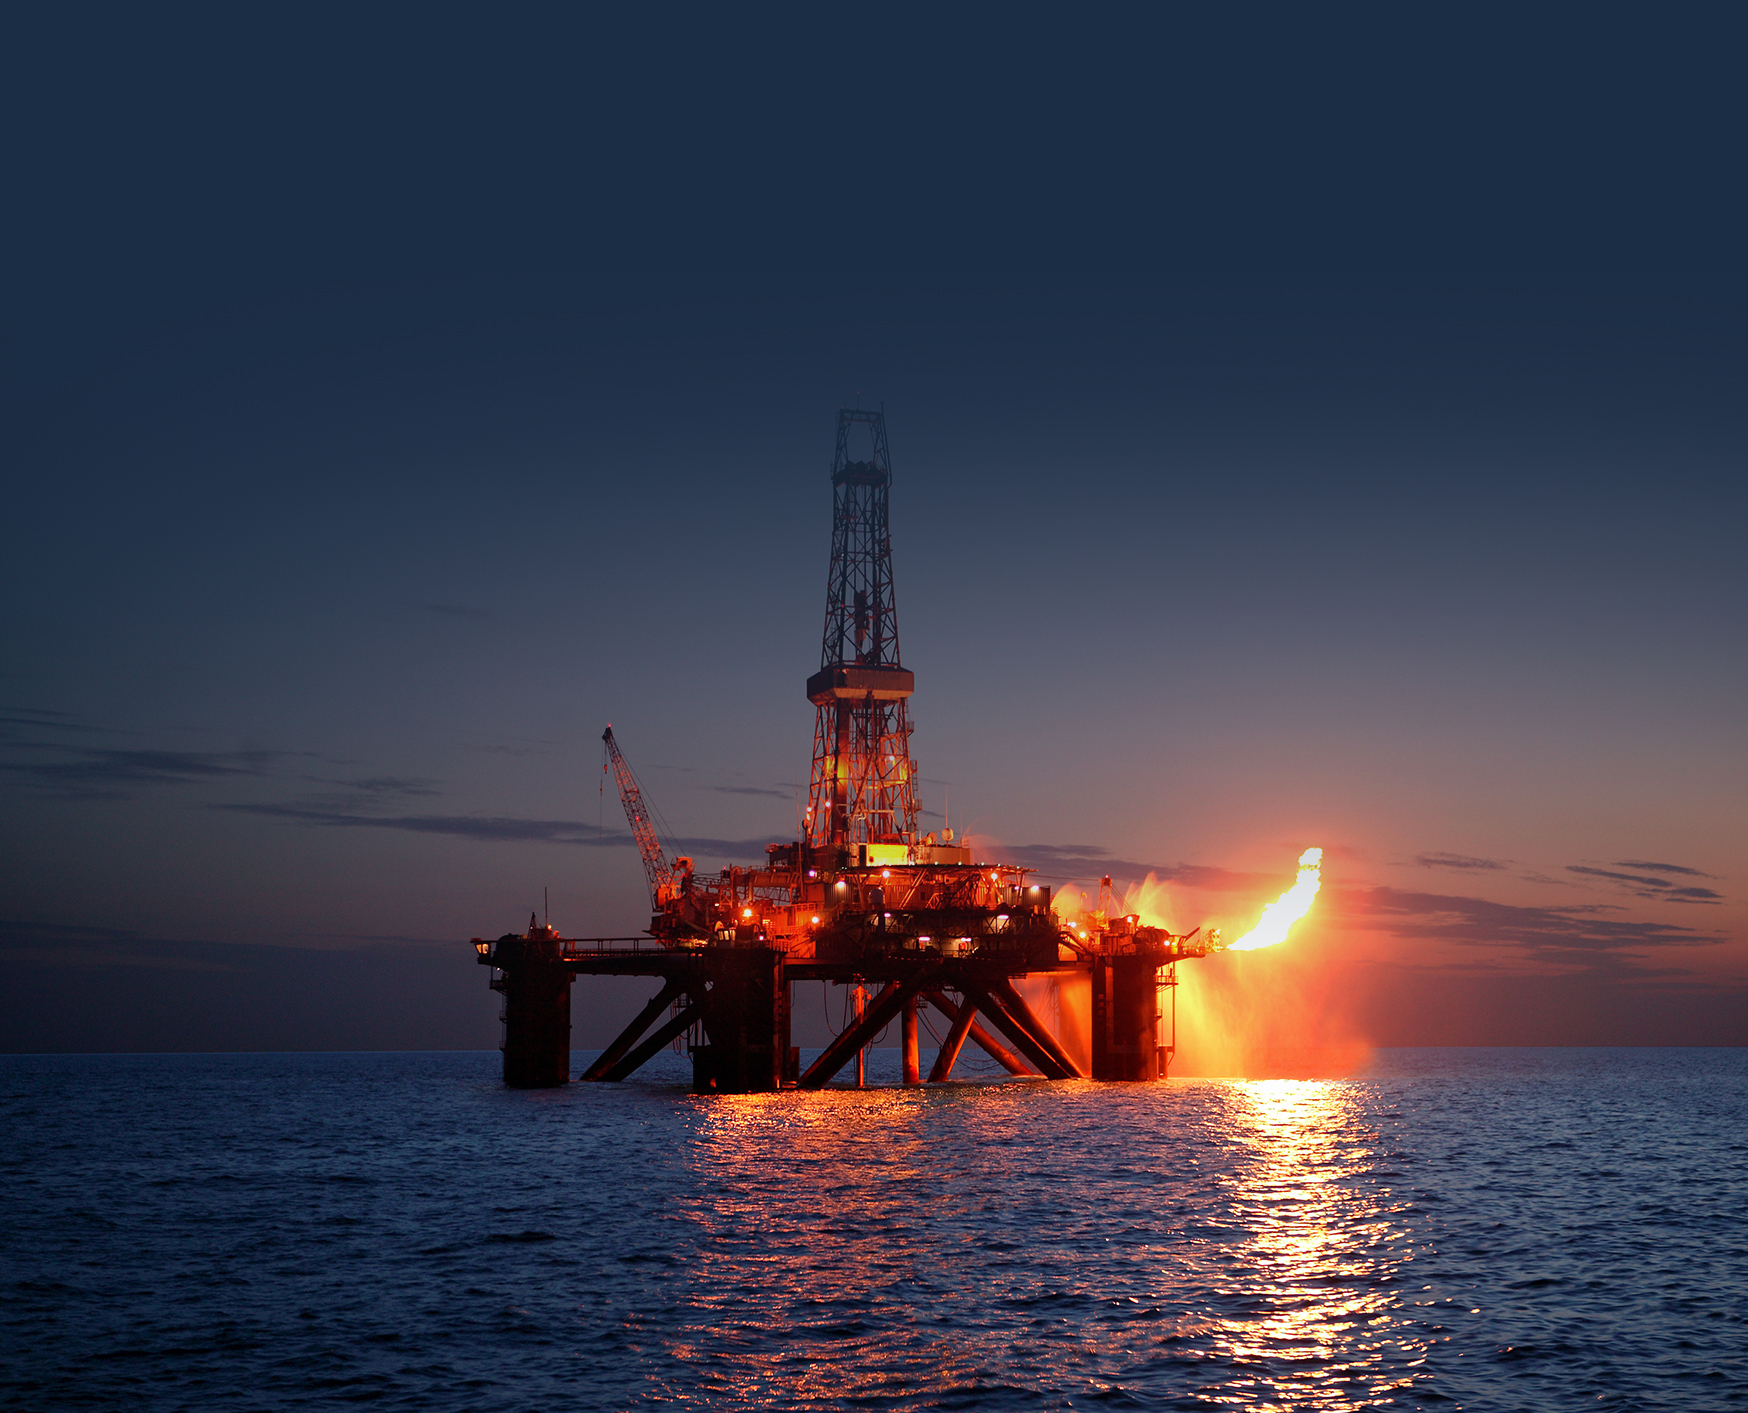 Oil Platform Simulation App - Energy, Oil & Gas Software Case Study